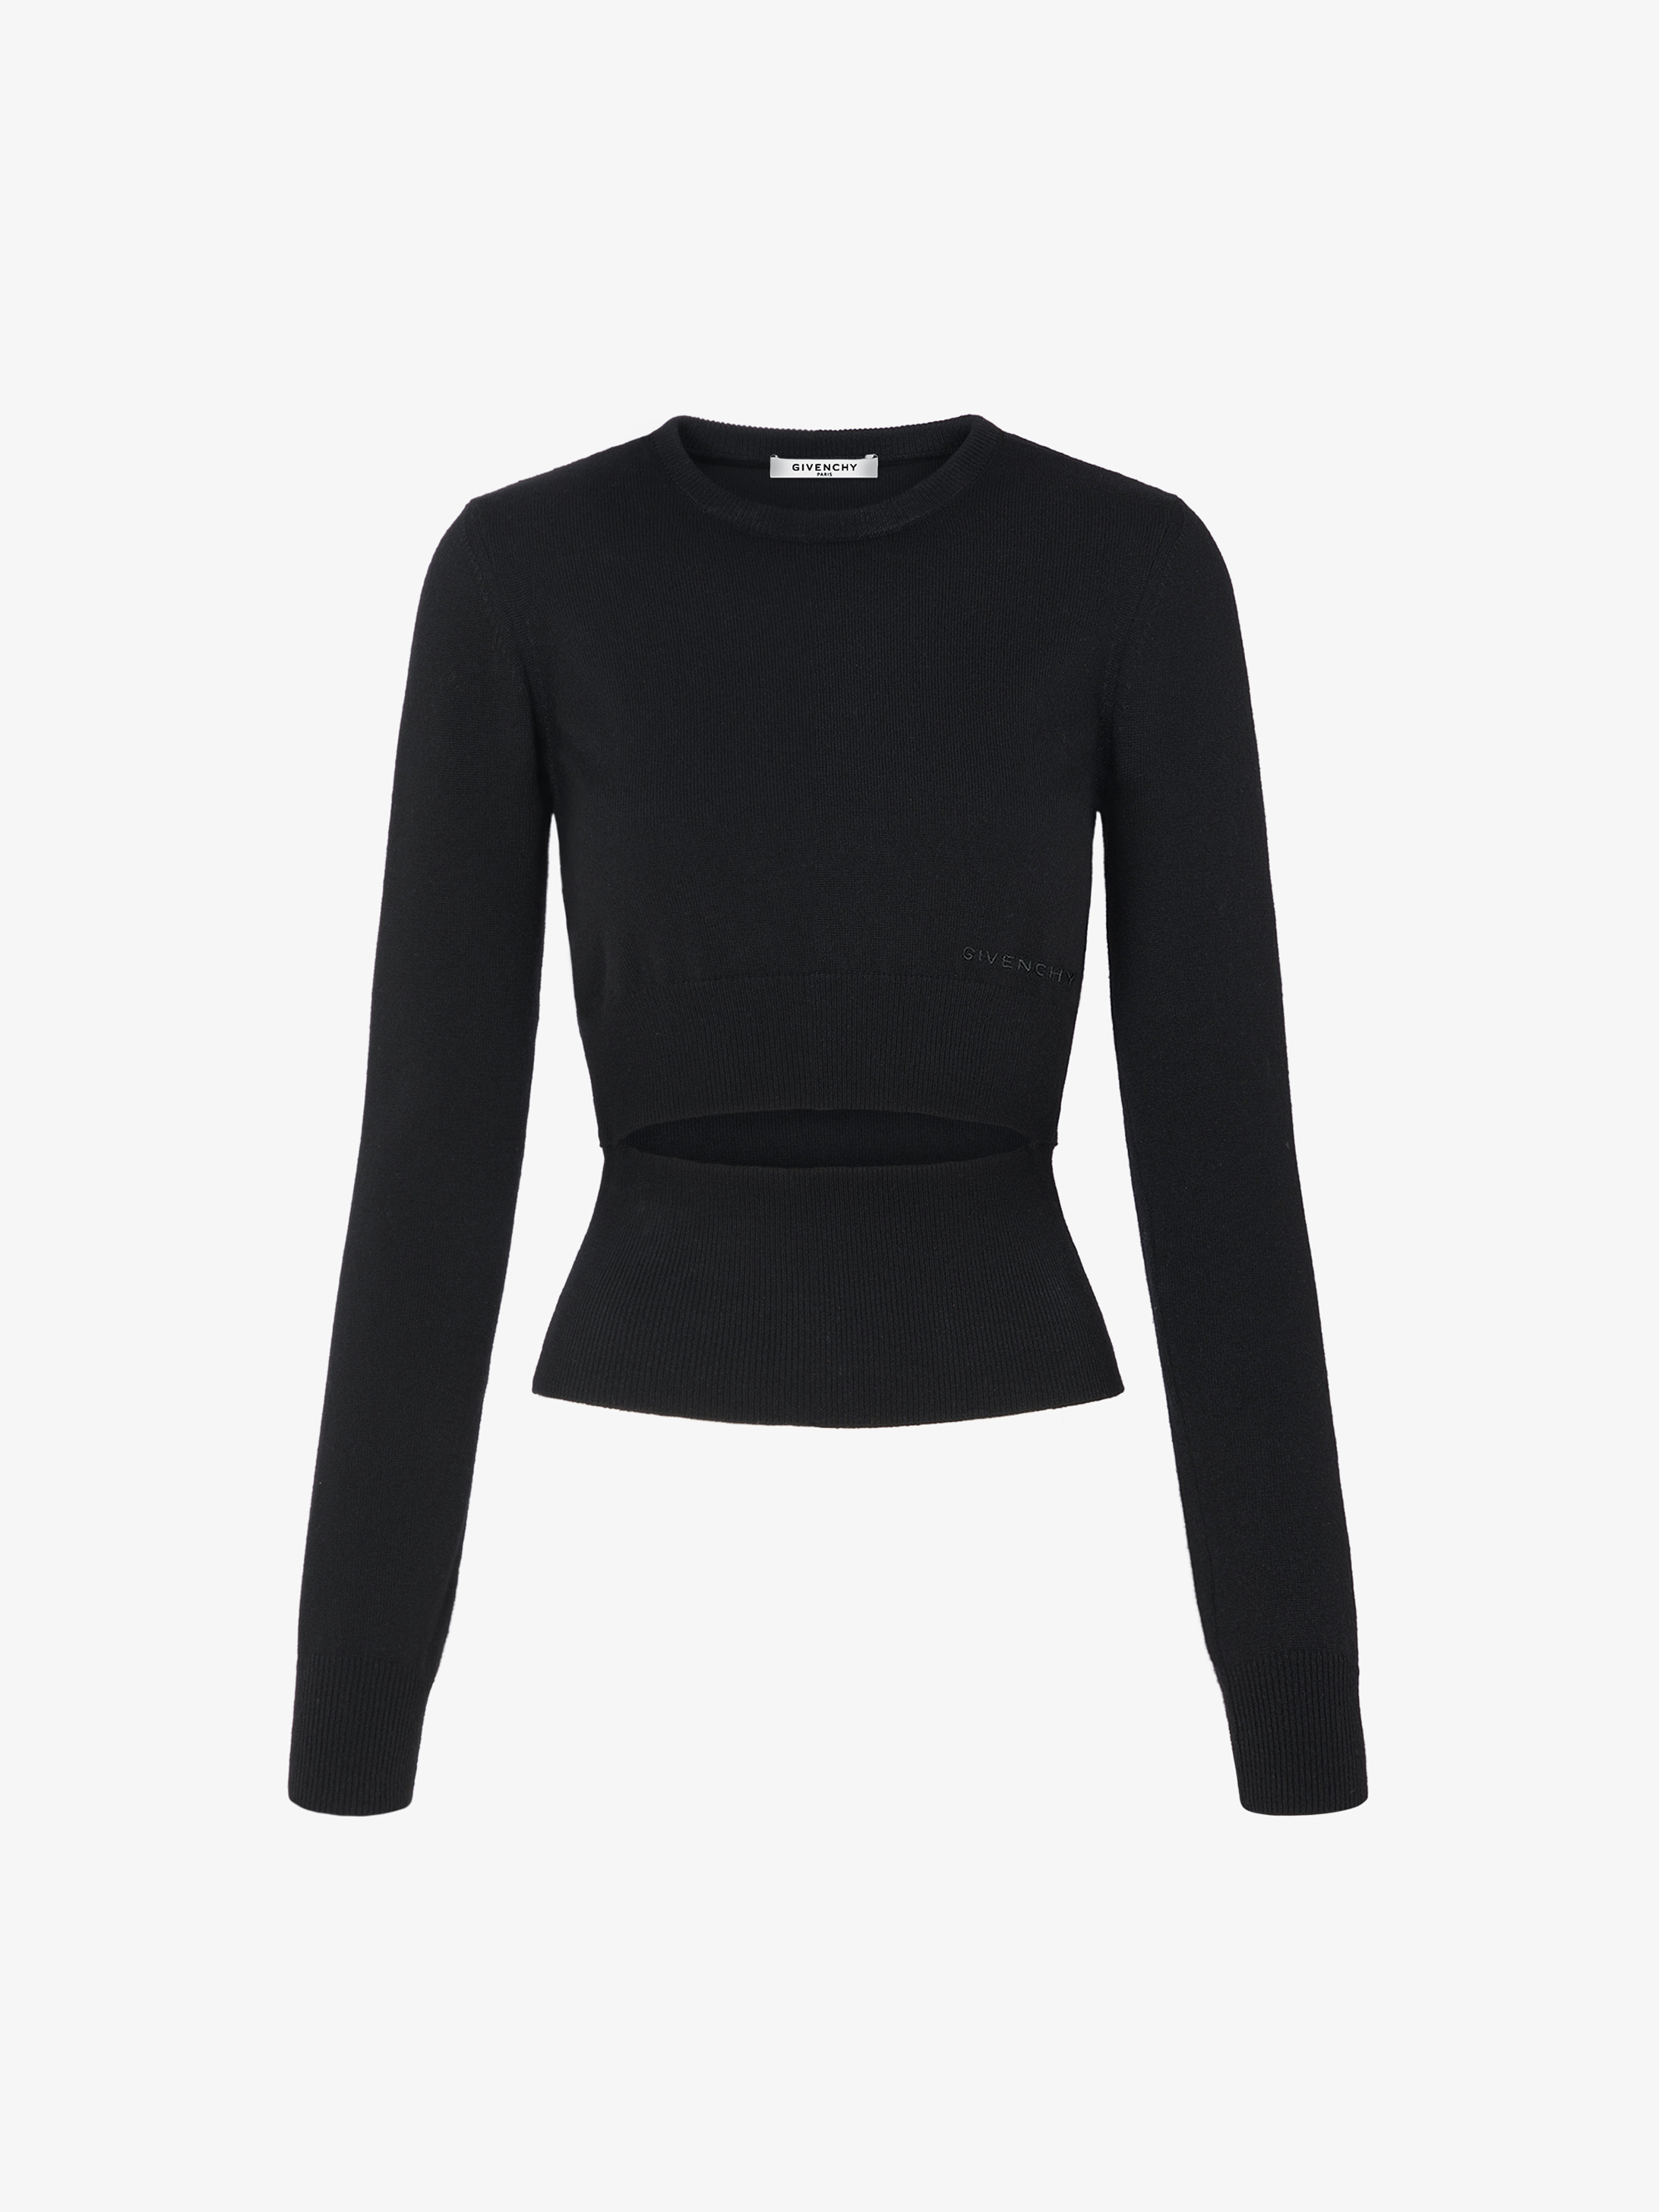 Short GIVENCHY sweater with decorative cut-out